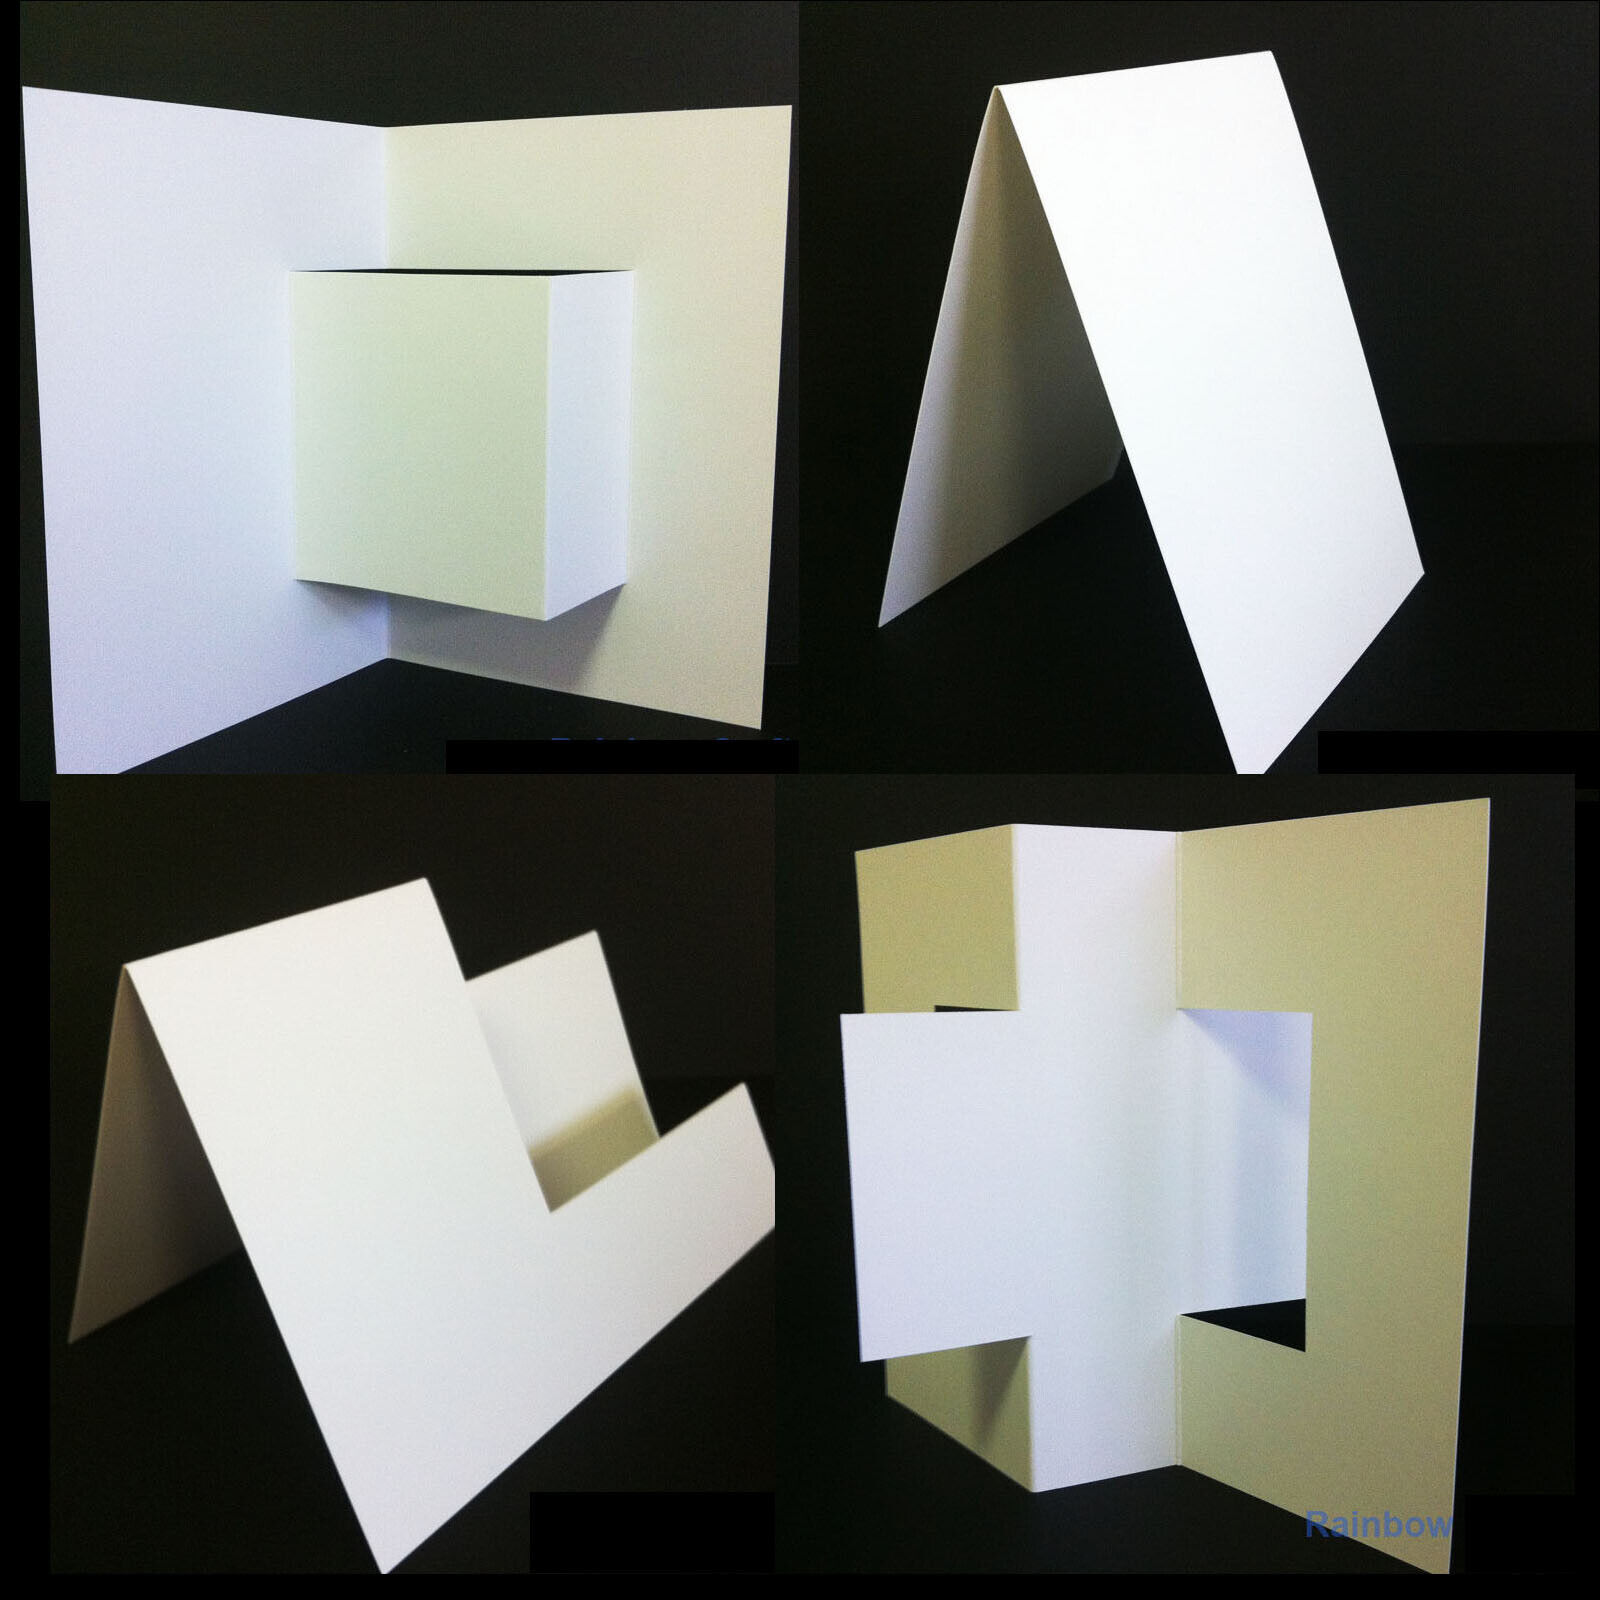 10 Blank Cards & Envelopes / Scallop Edge / step card / DL / Horizontal / Swing